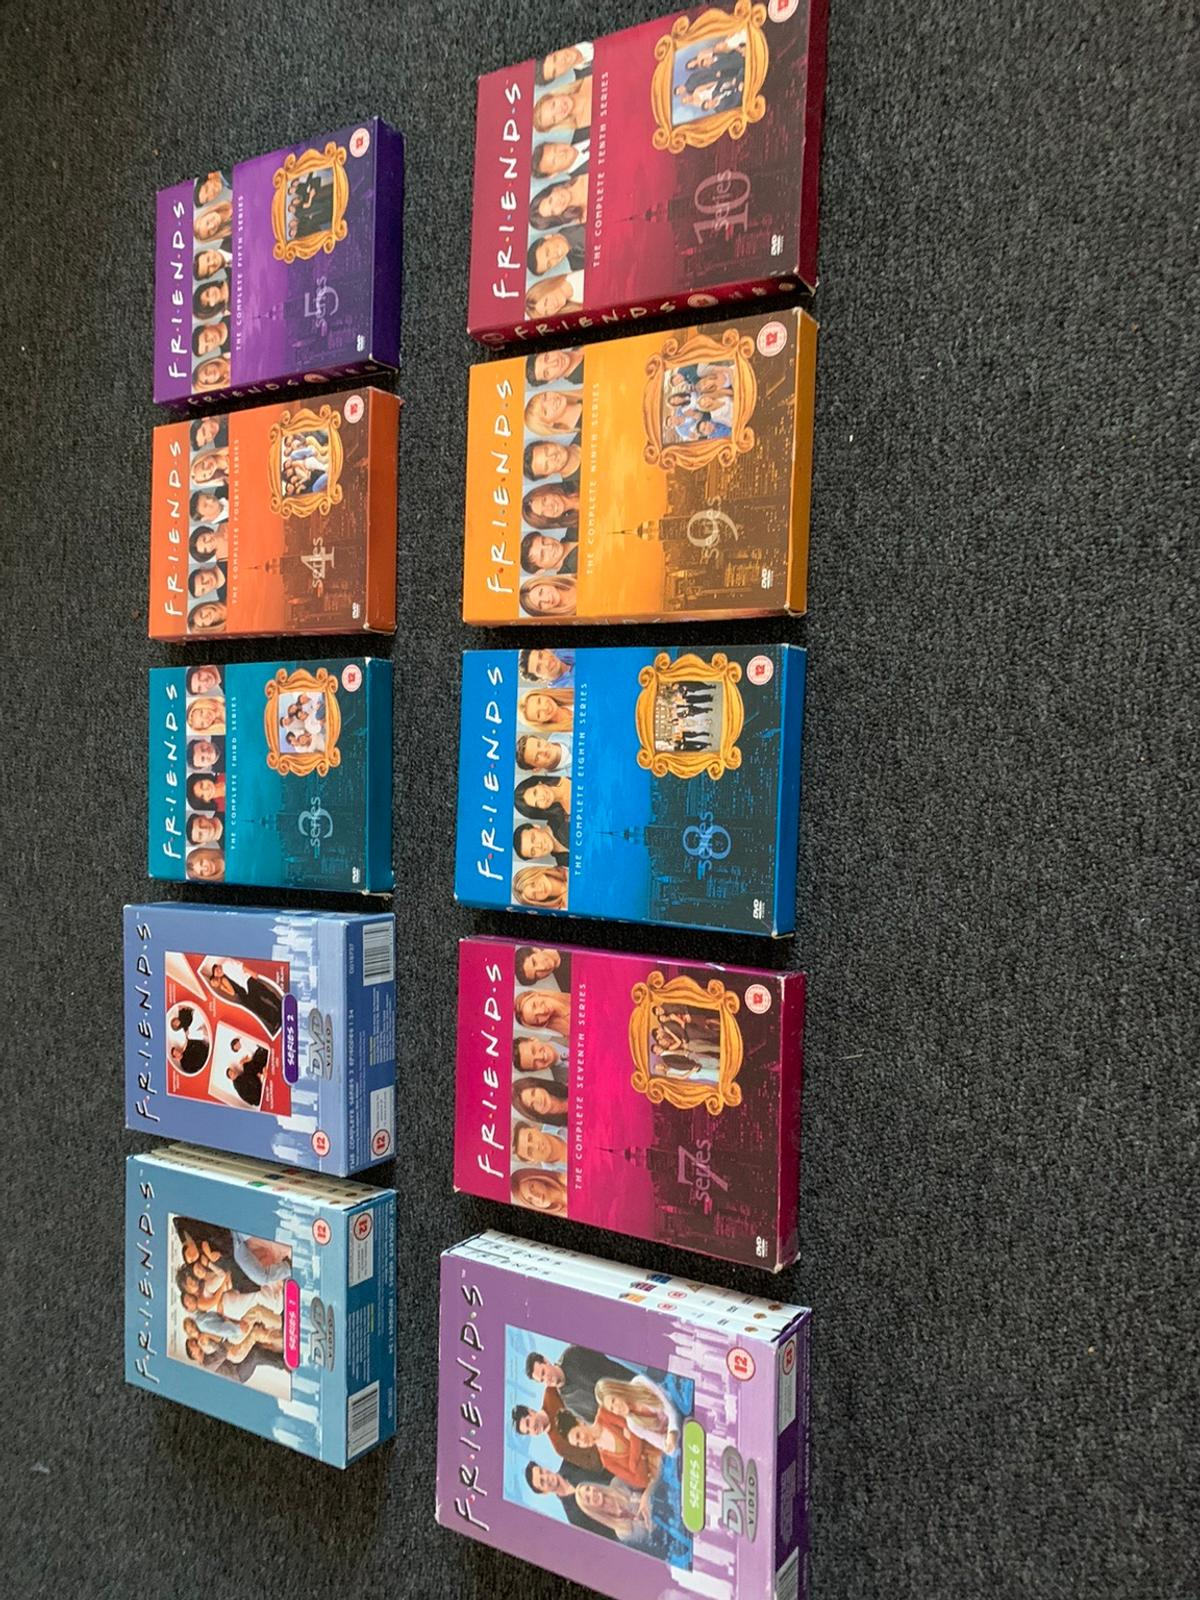 Full box set of friends 1-10 there in great condition will accept offers